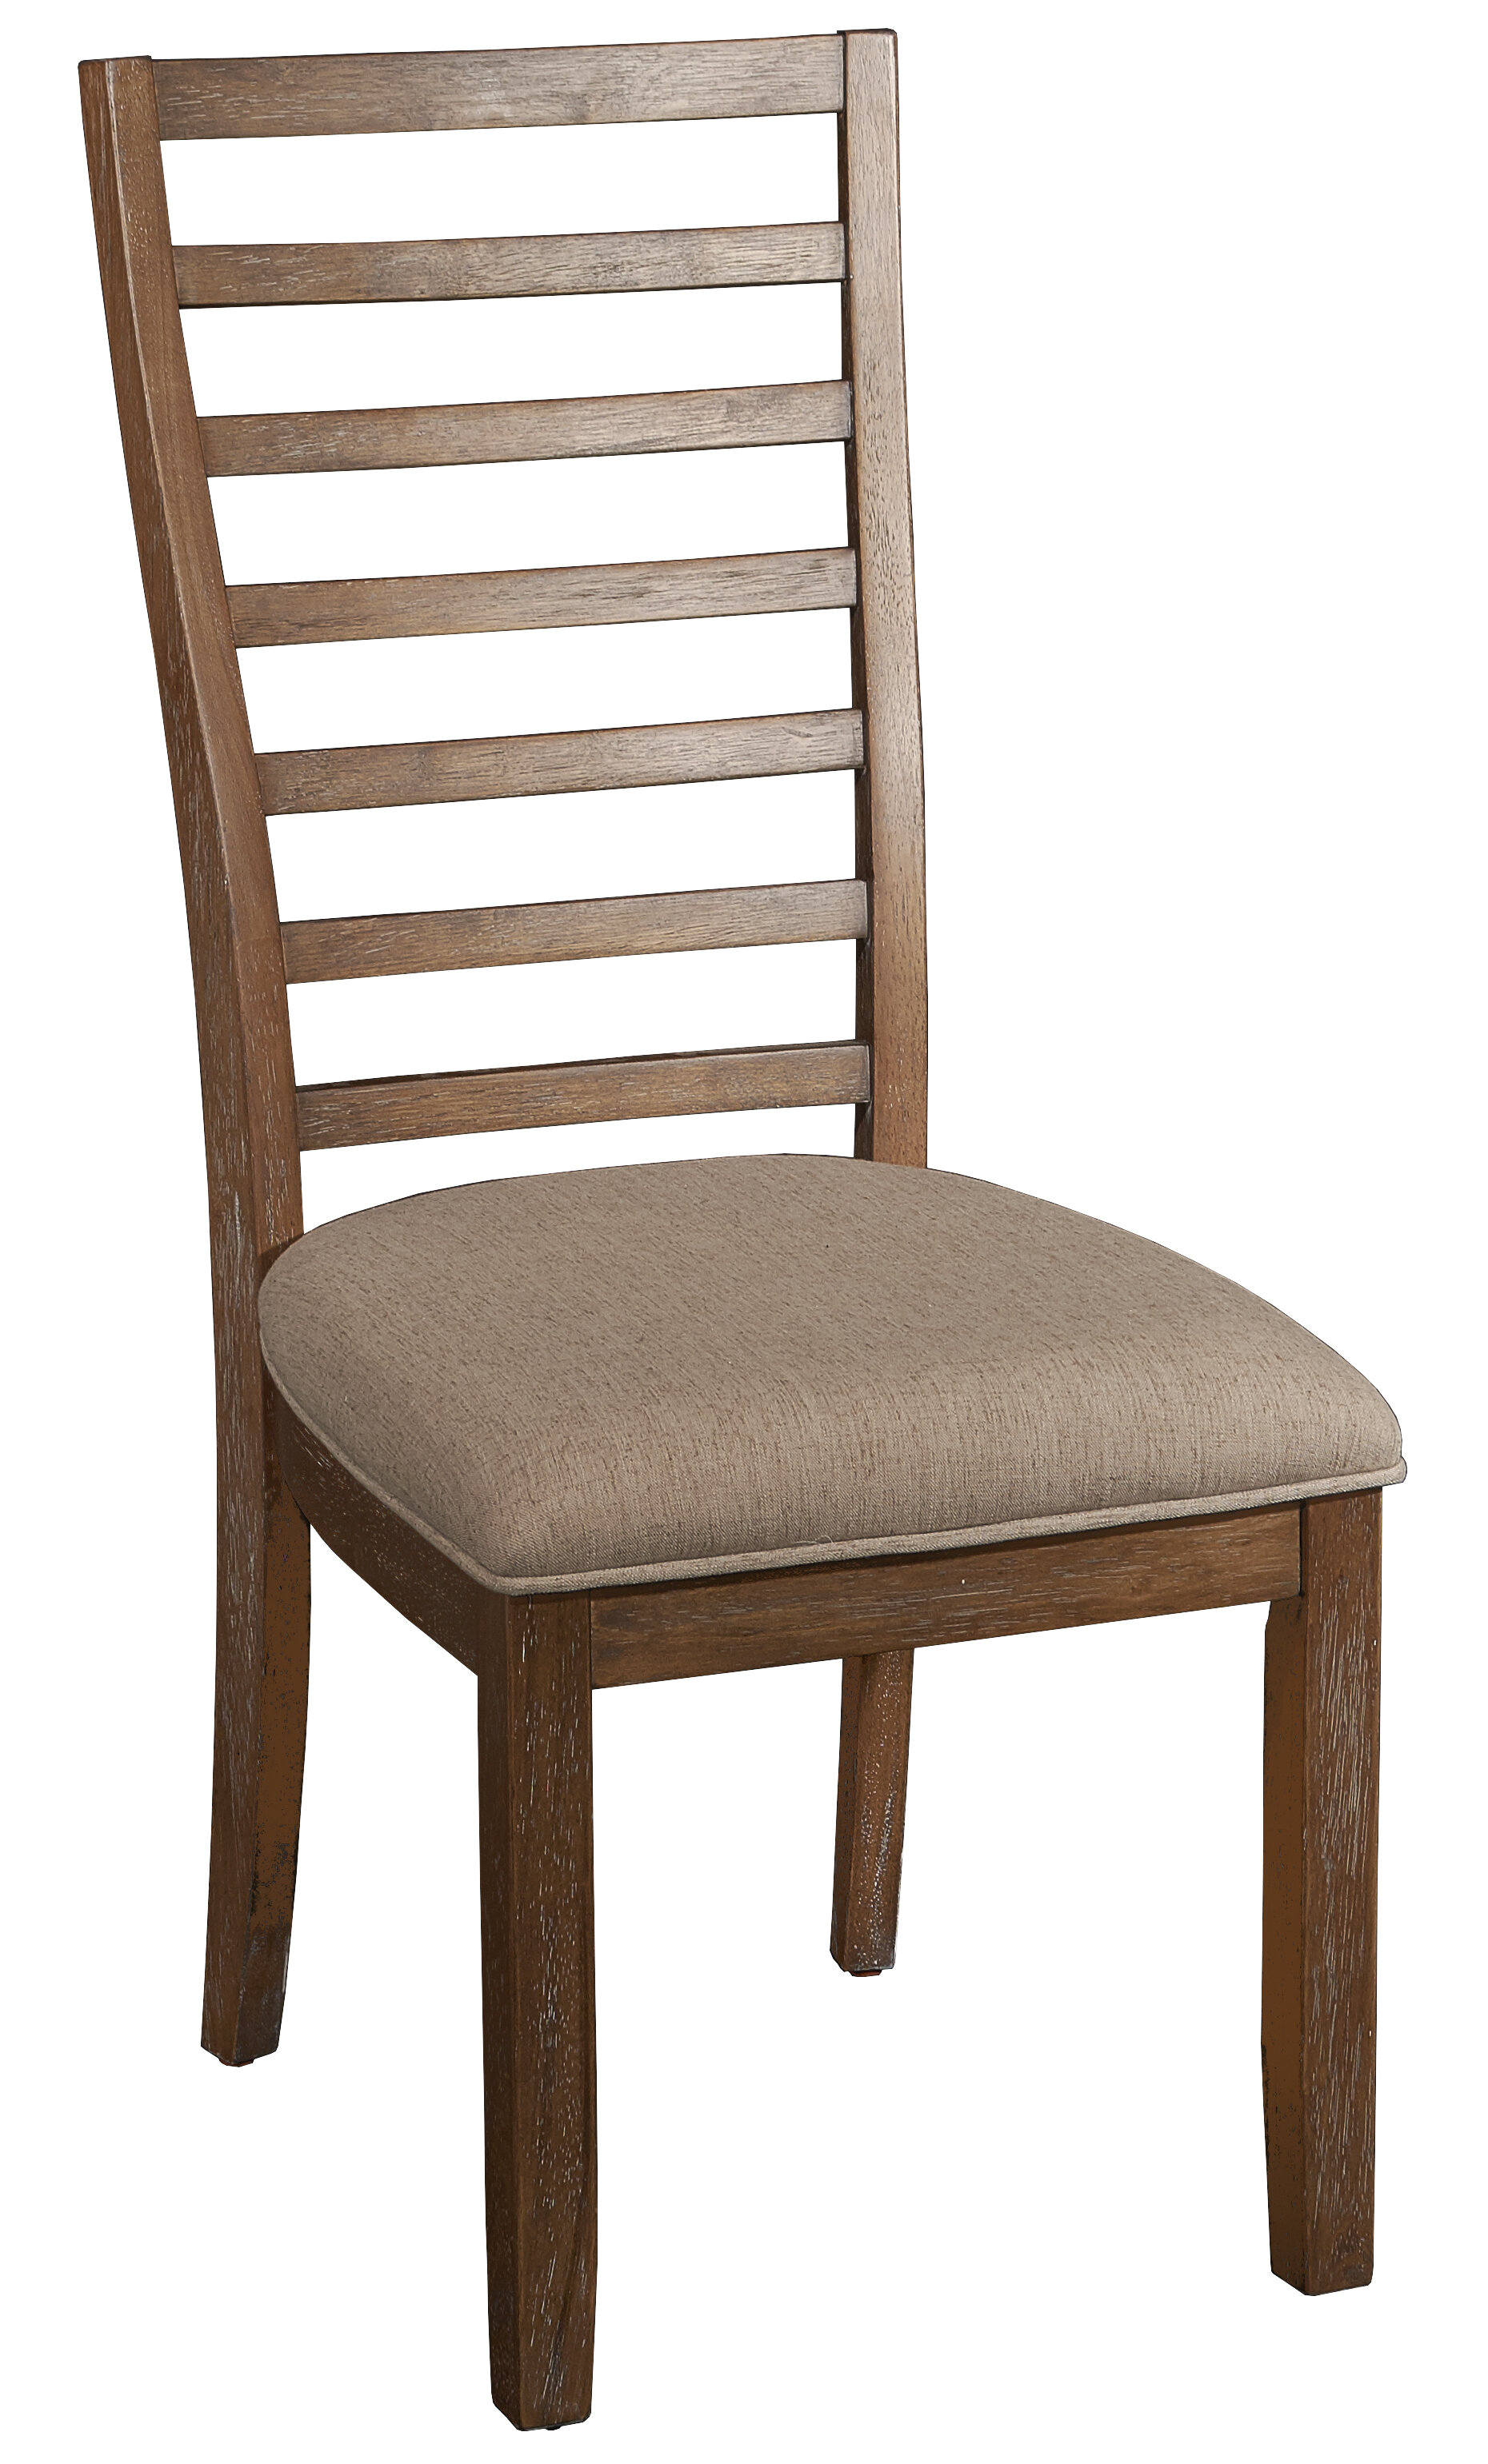 Espresso Ladder Back Kitchen Dining Chairs You Ll Love In 2021 Wayfair